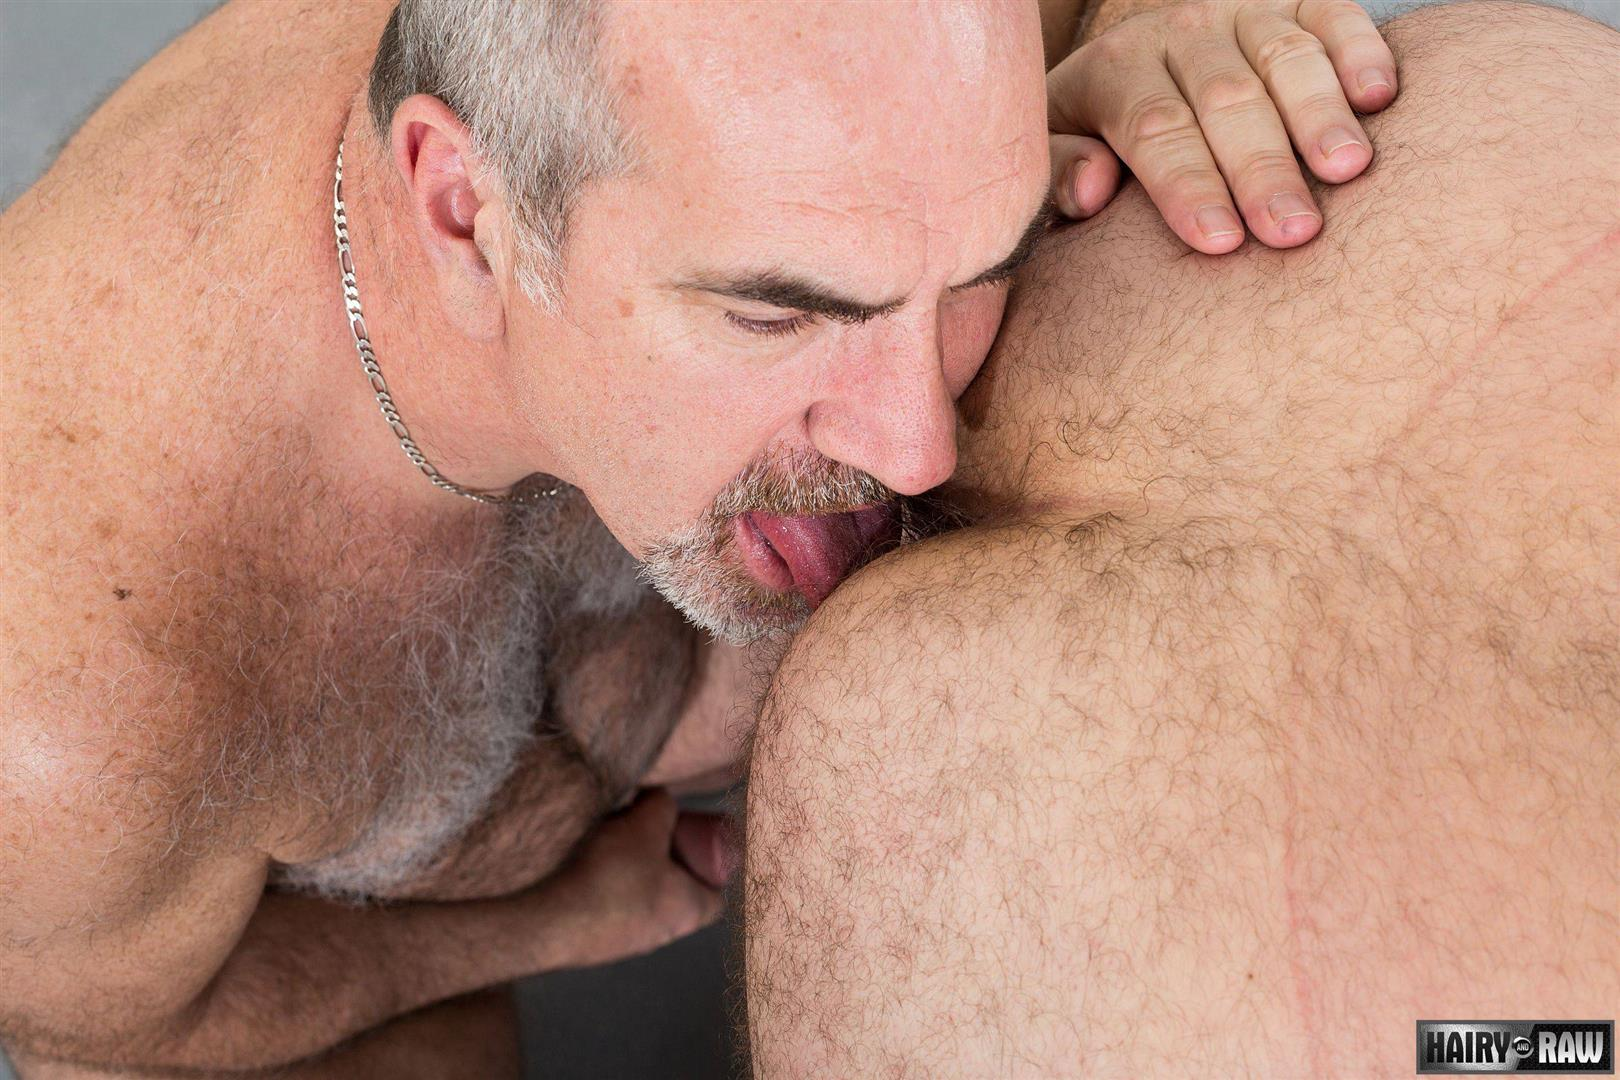 Hairy and Raw Vince Stewart and Martin Pe Hairy Chubby Dads Barebacking Uncut Cocks Amateur Gay Porn 15 Hairy Chubby Dads With Thick Uncut Cocks Fucking Bareback